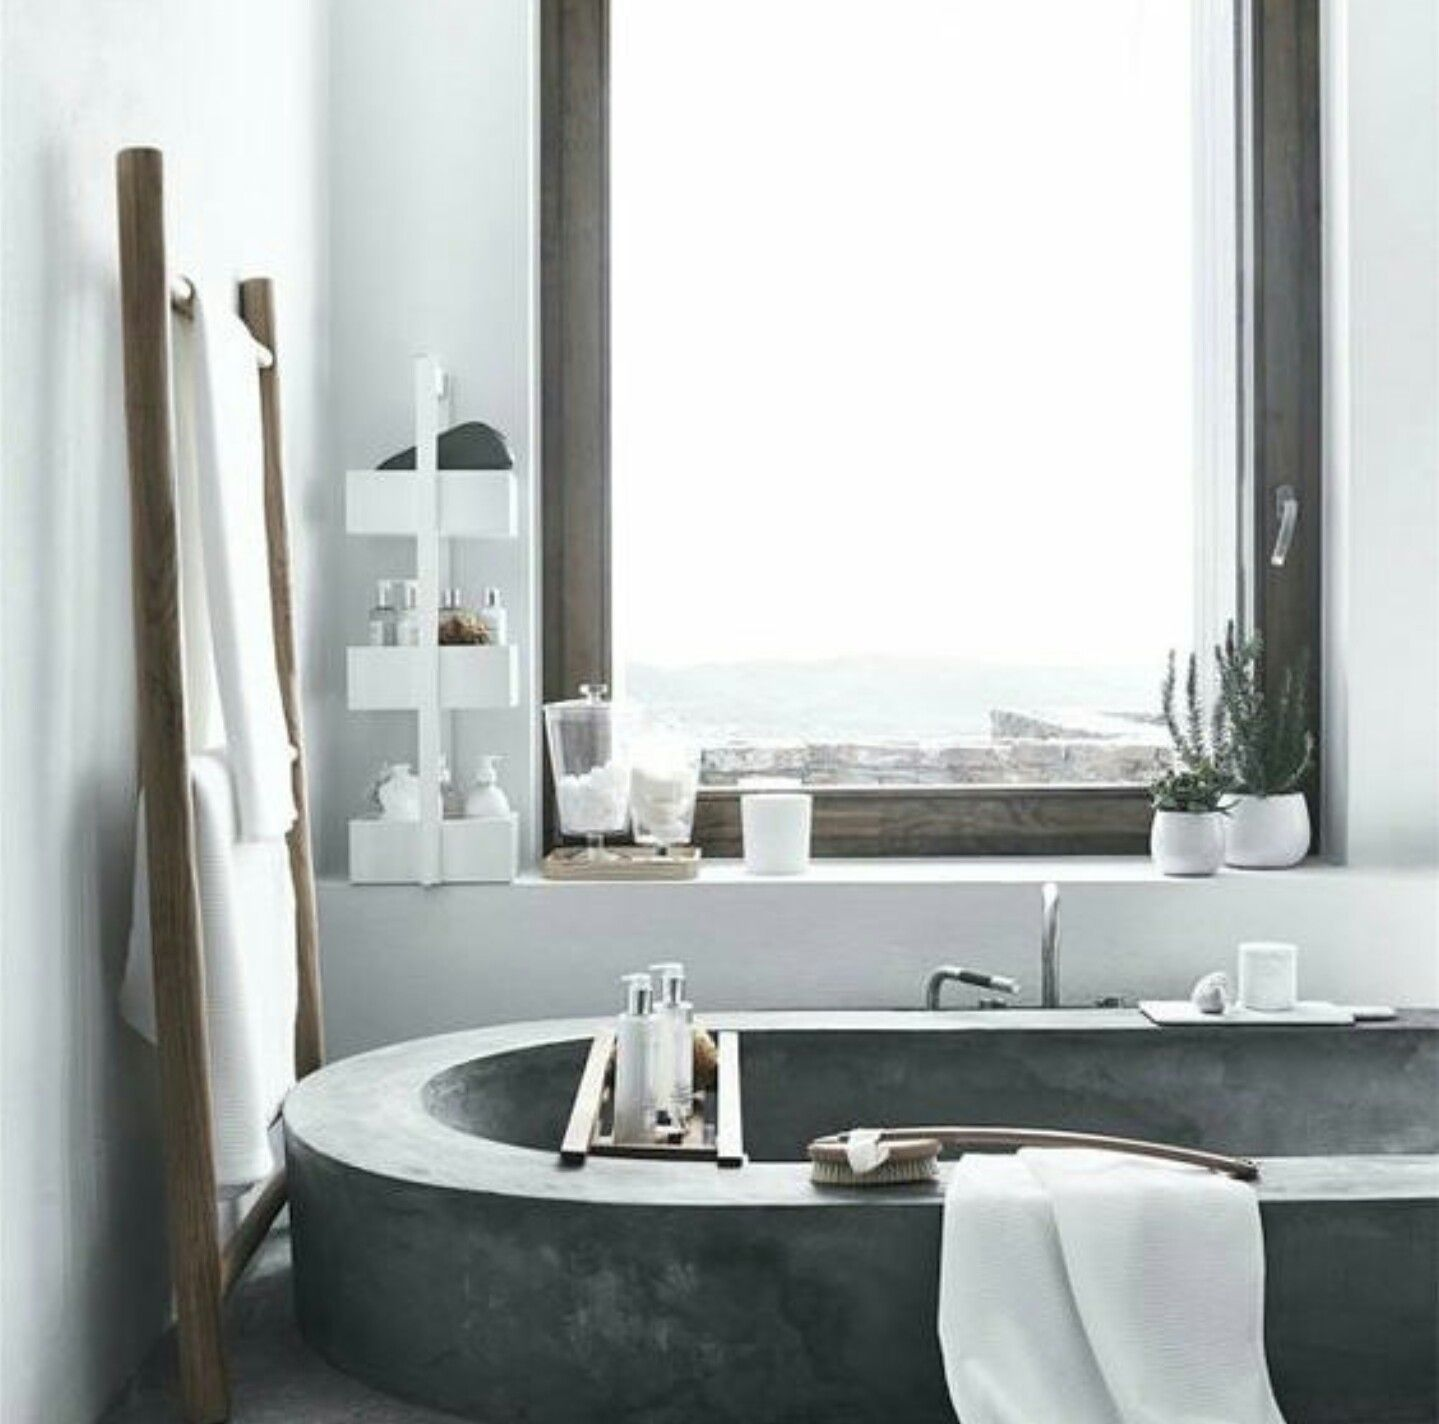 Own your morning bathroom interior